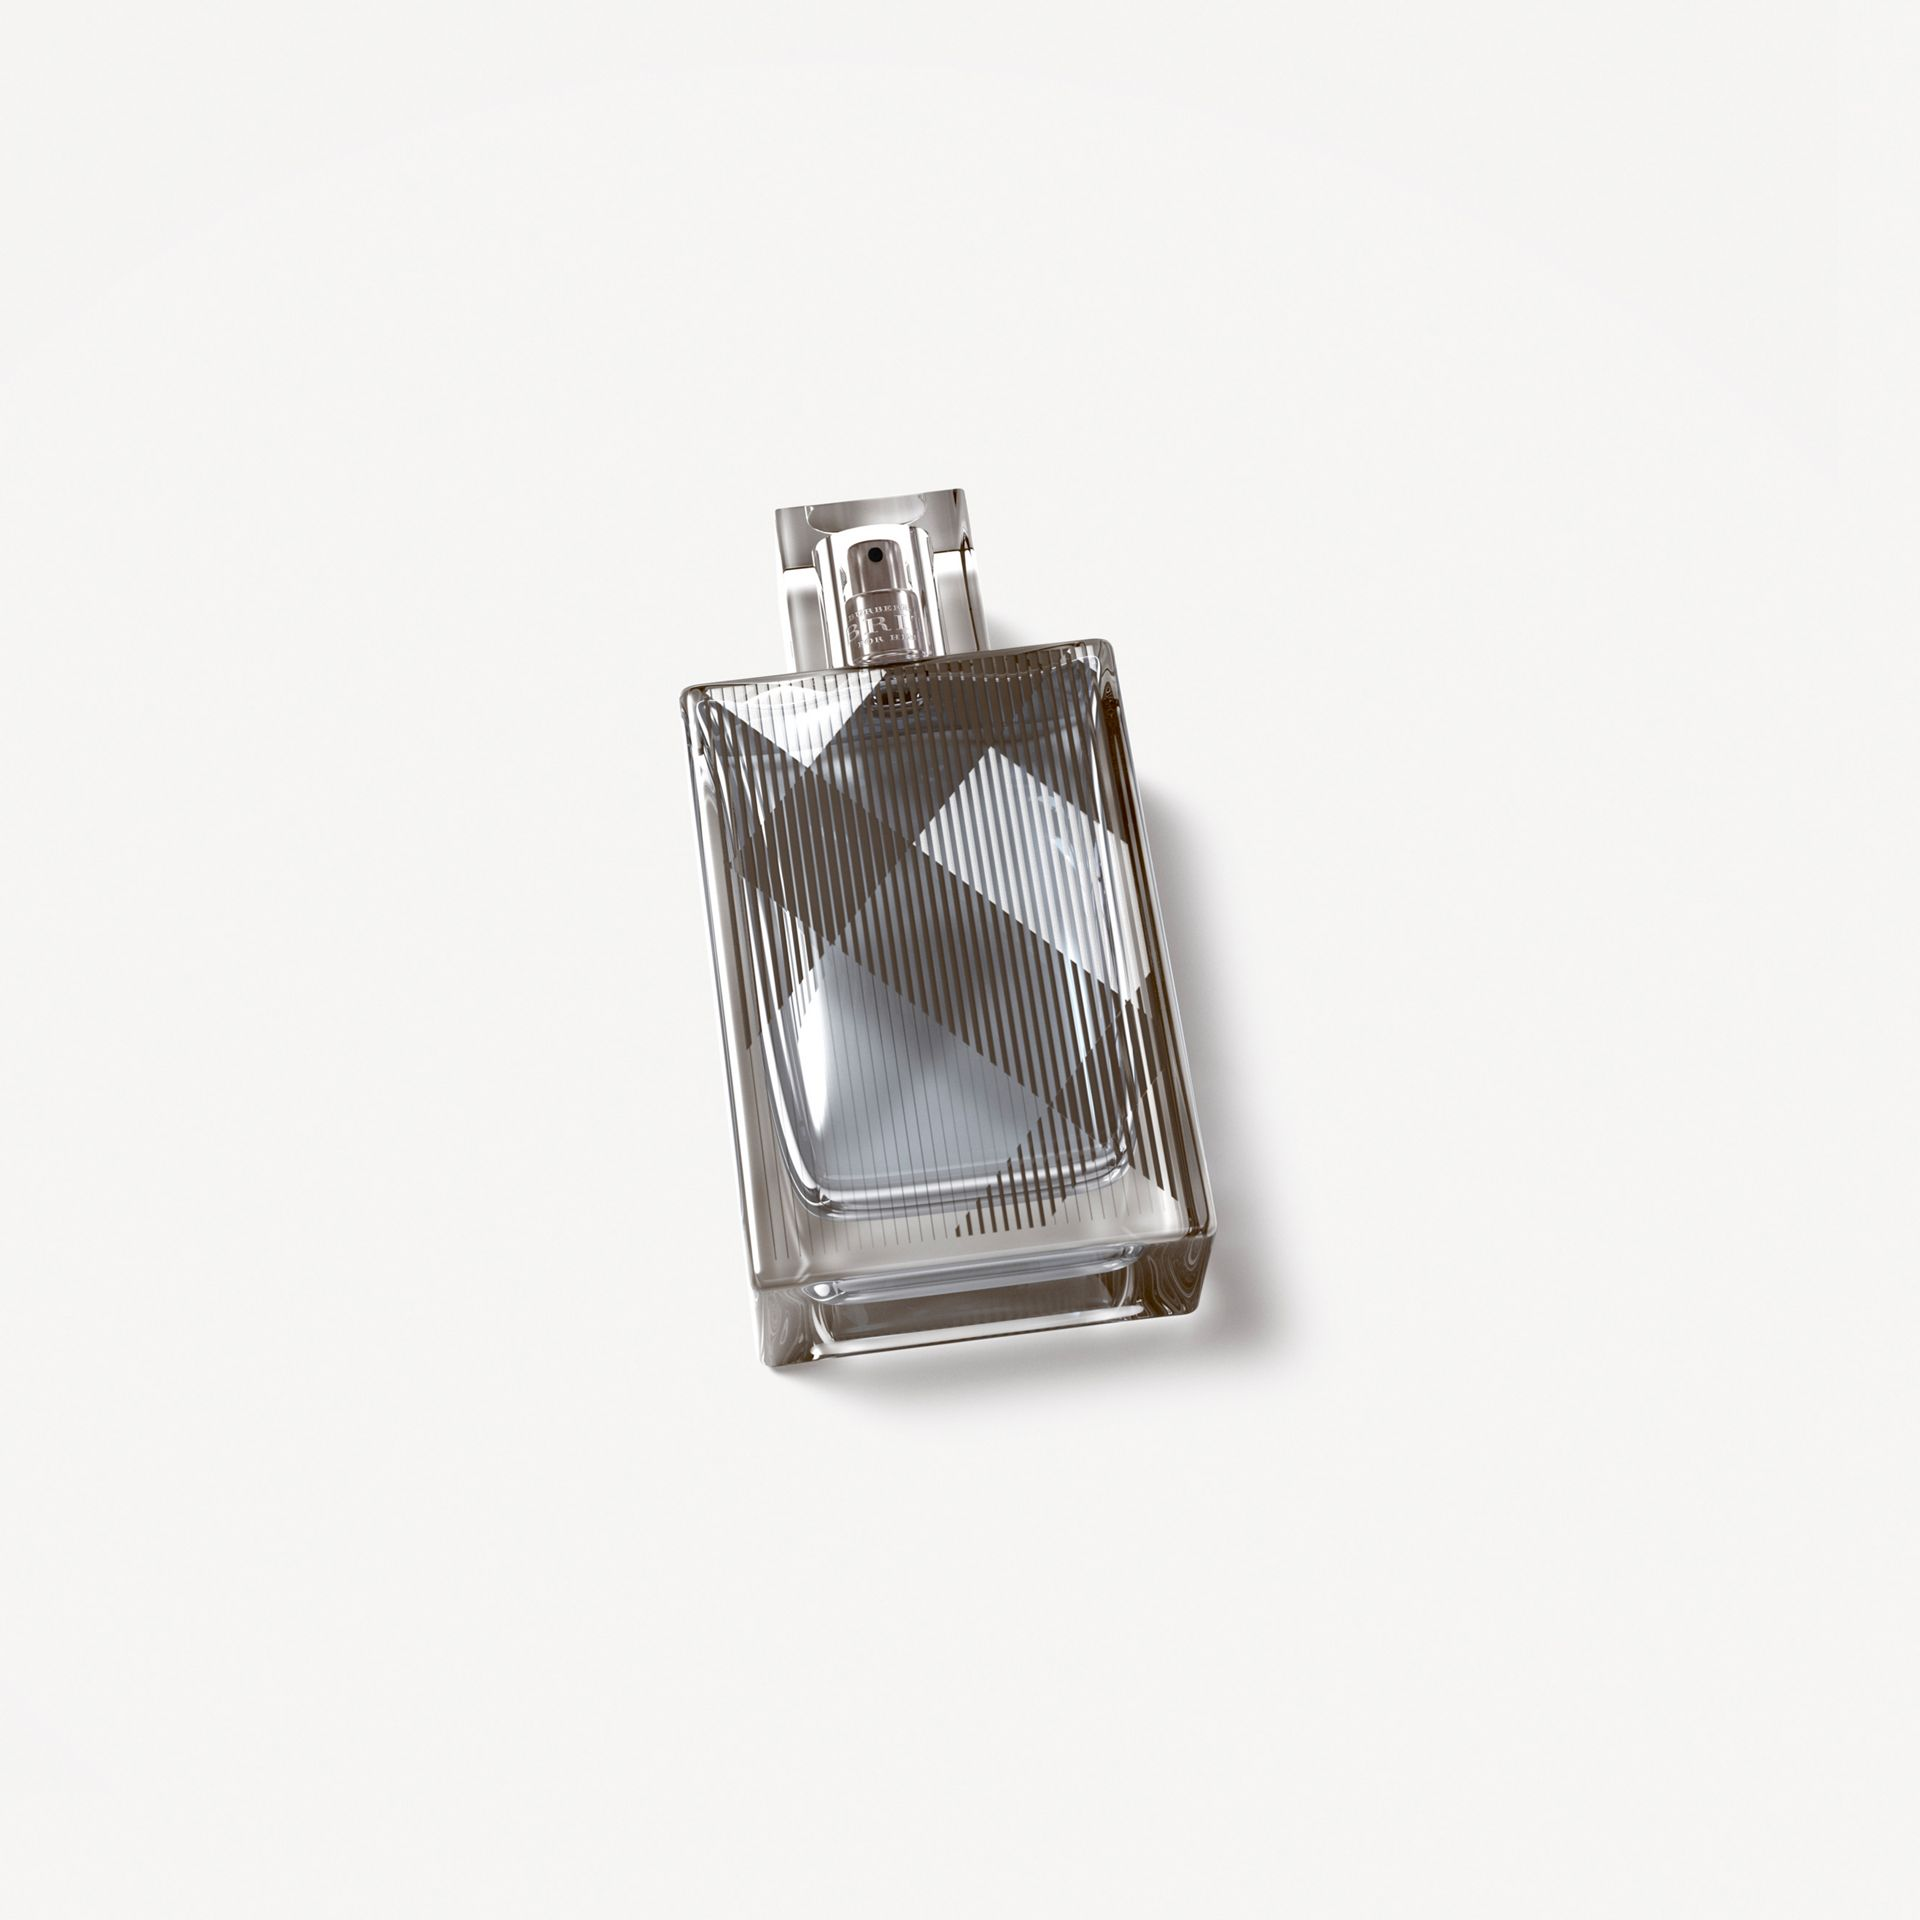 Burberry Brit For Him Eau de Toilette 50ml - gallery image 1